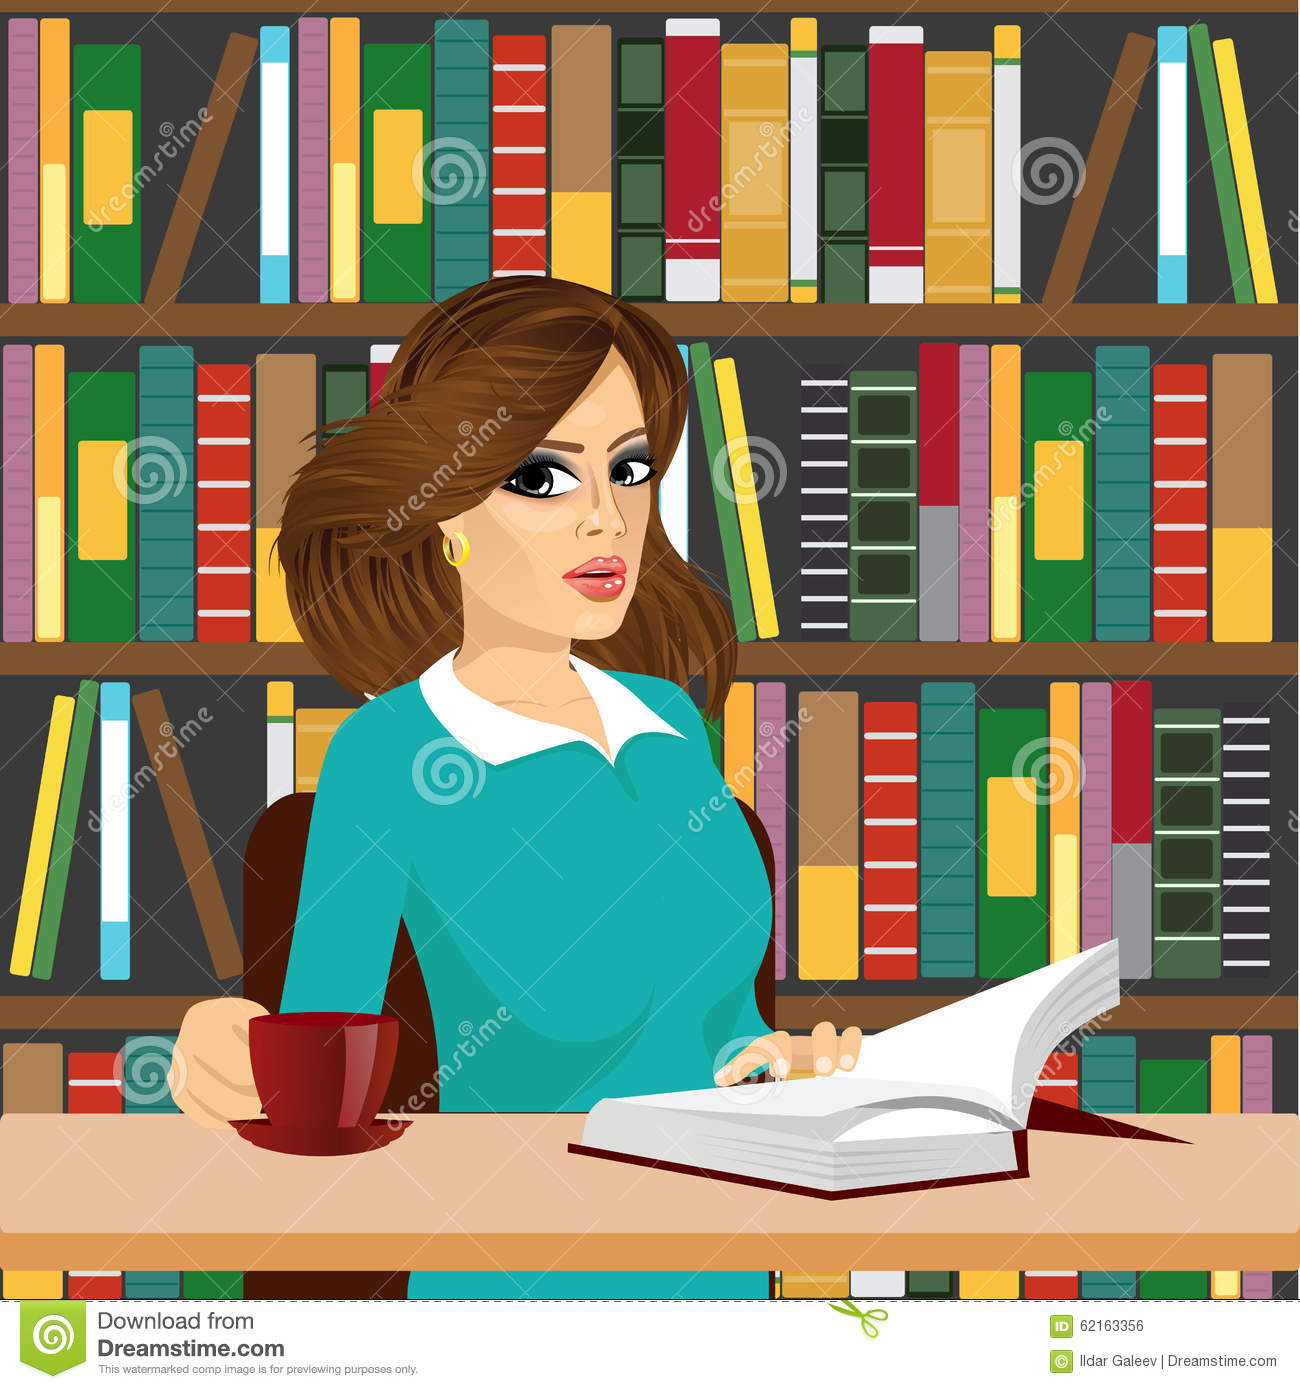 Women clipart librarian Woman librarian of brunette Clipart